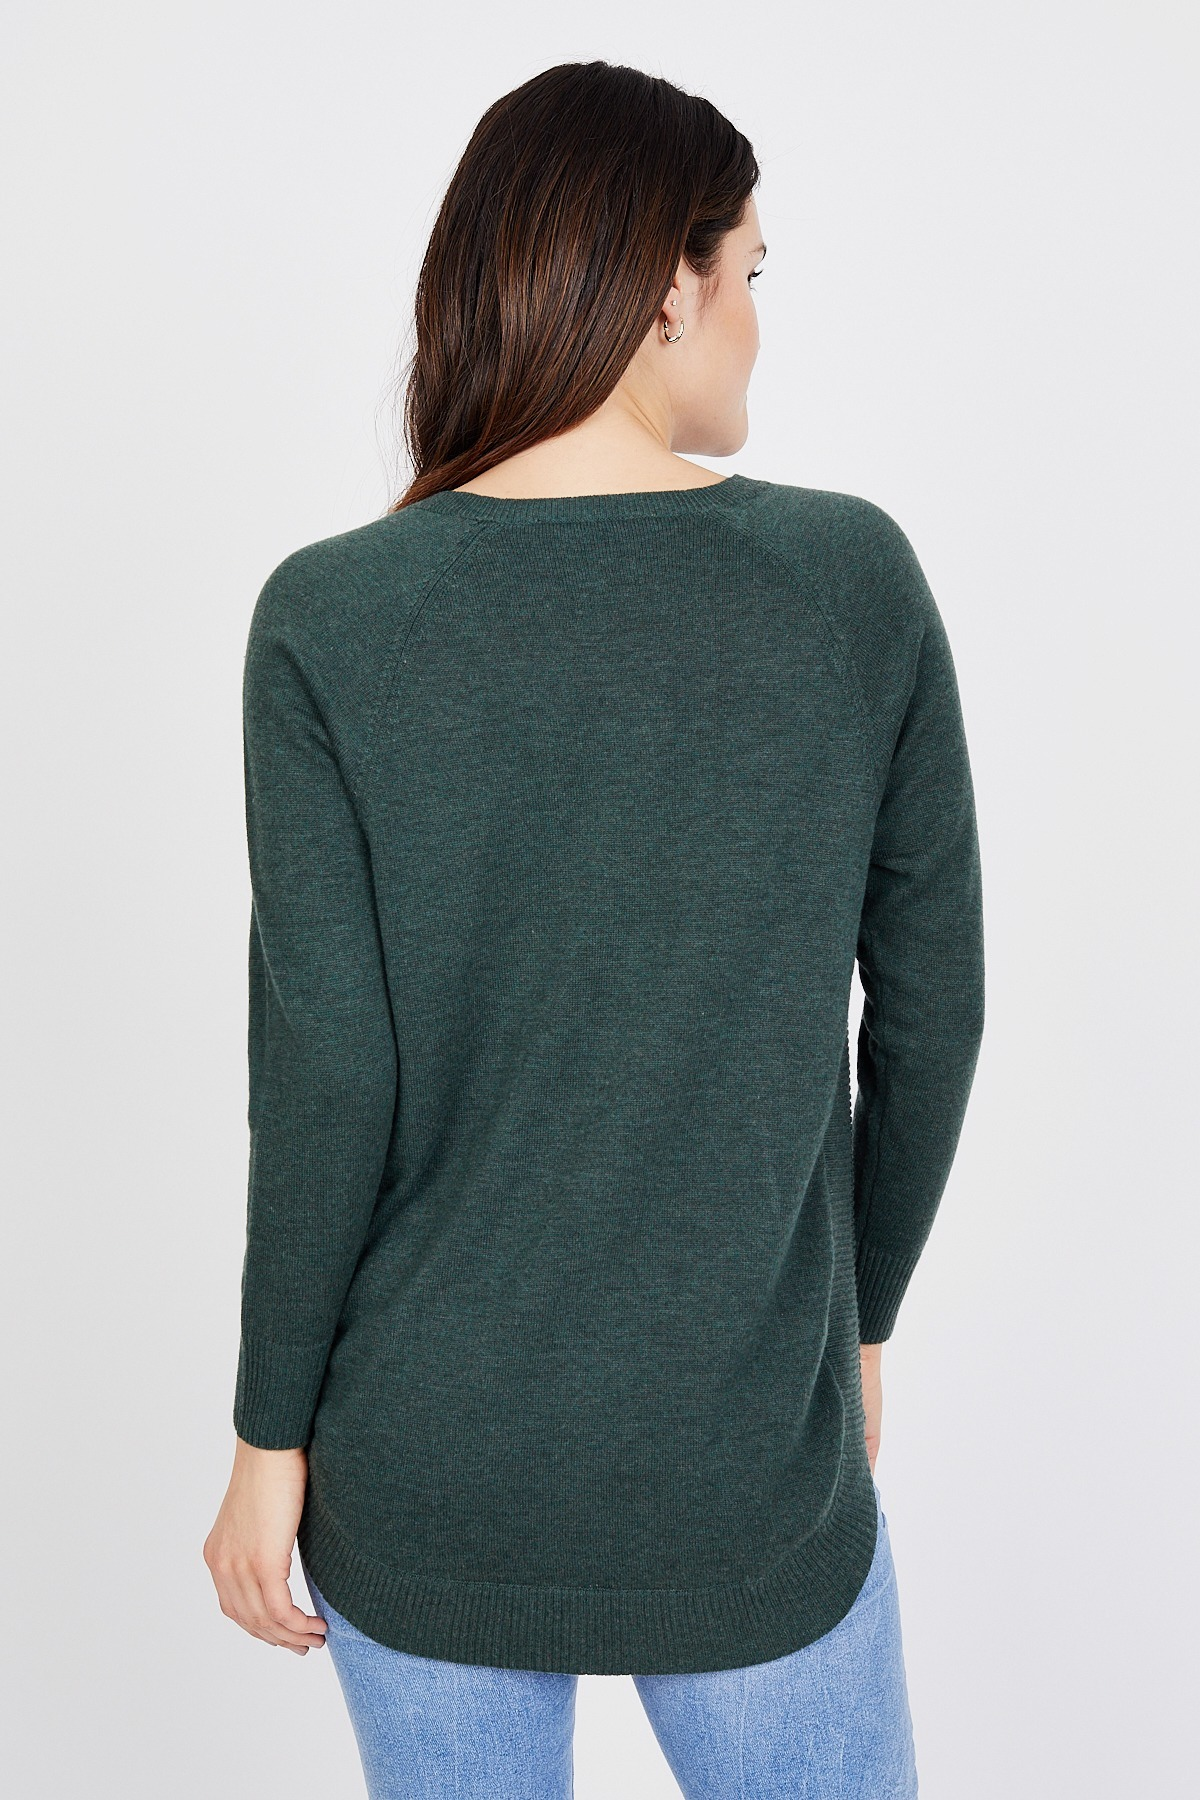 606a45f658be Front Pocket Sweater by Summer   Sage - Rent Clothes with Le Tote